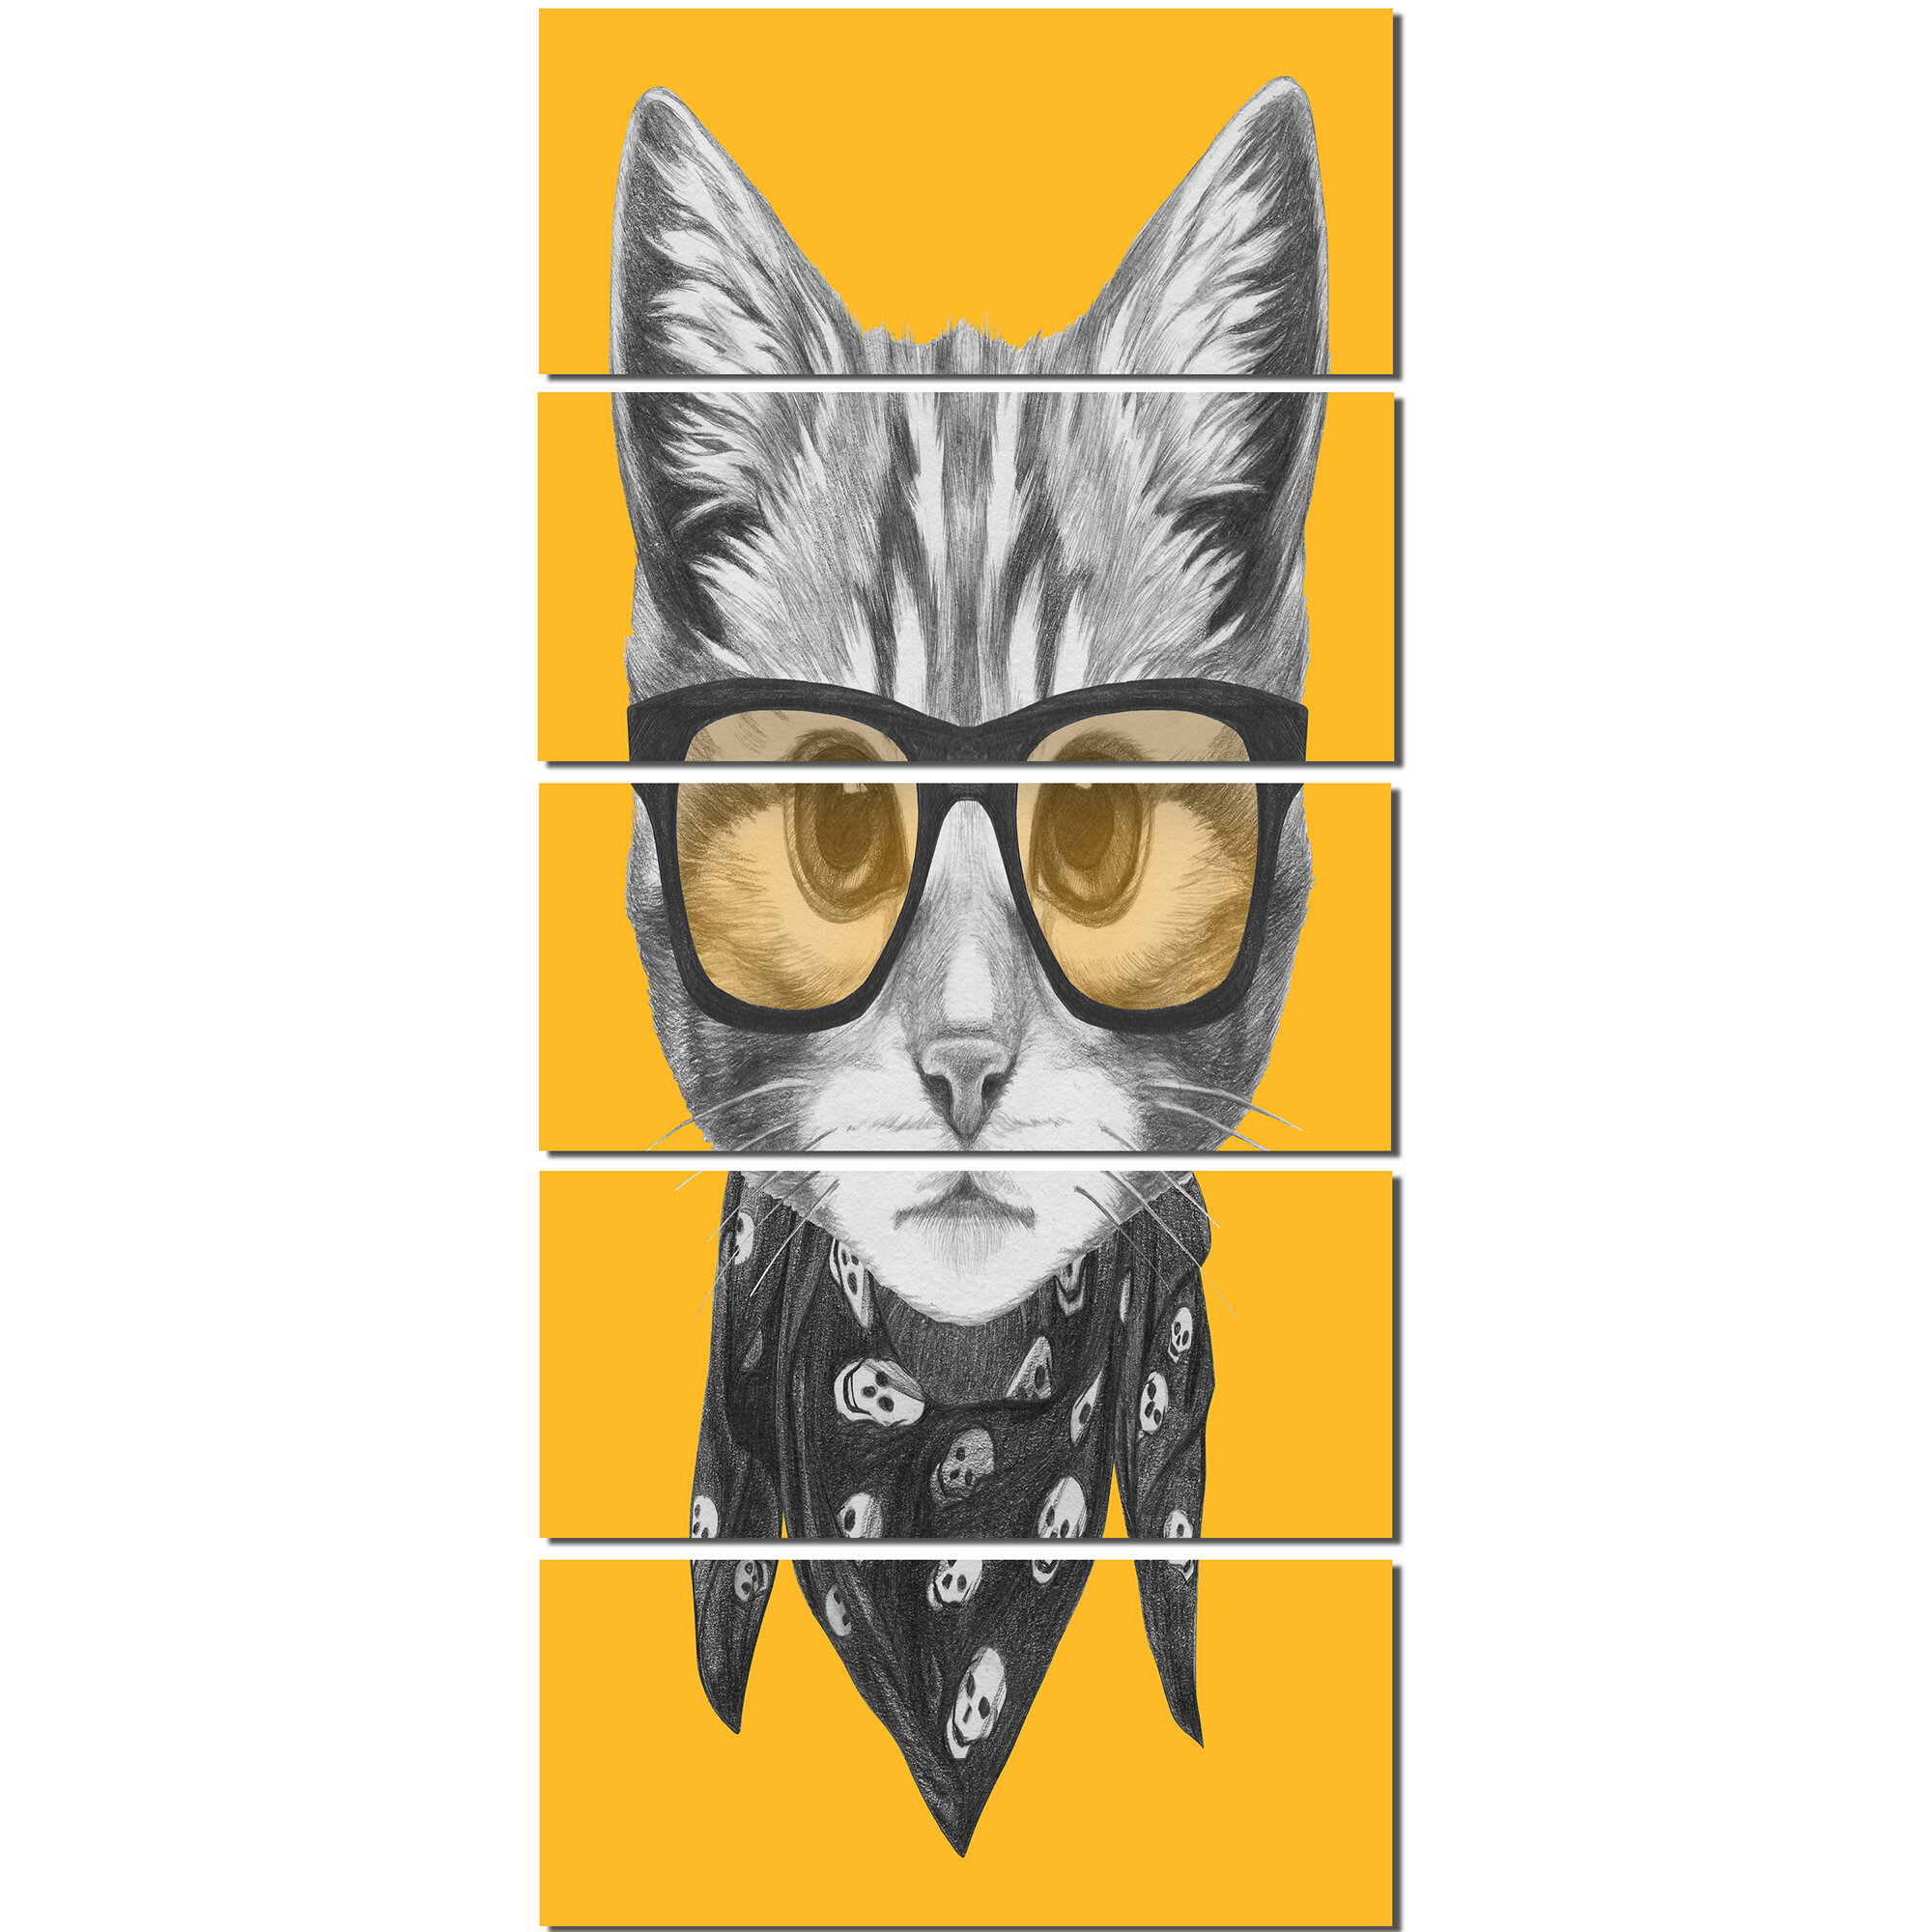 Designart Funny Cat With Glasses And Scarf 5 Piece Graphic Art On Wrapped Canvas Set Wayfair